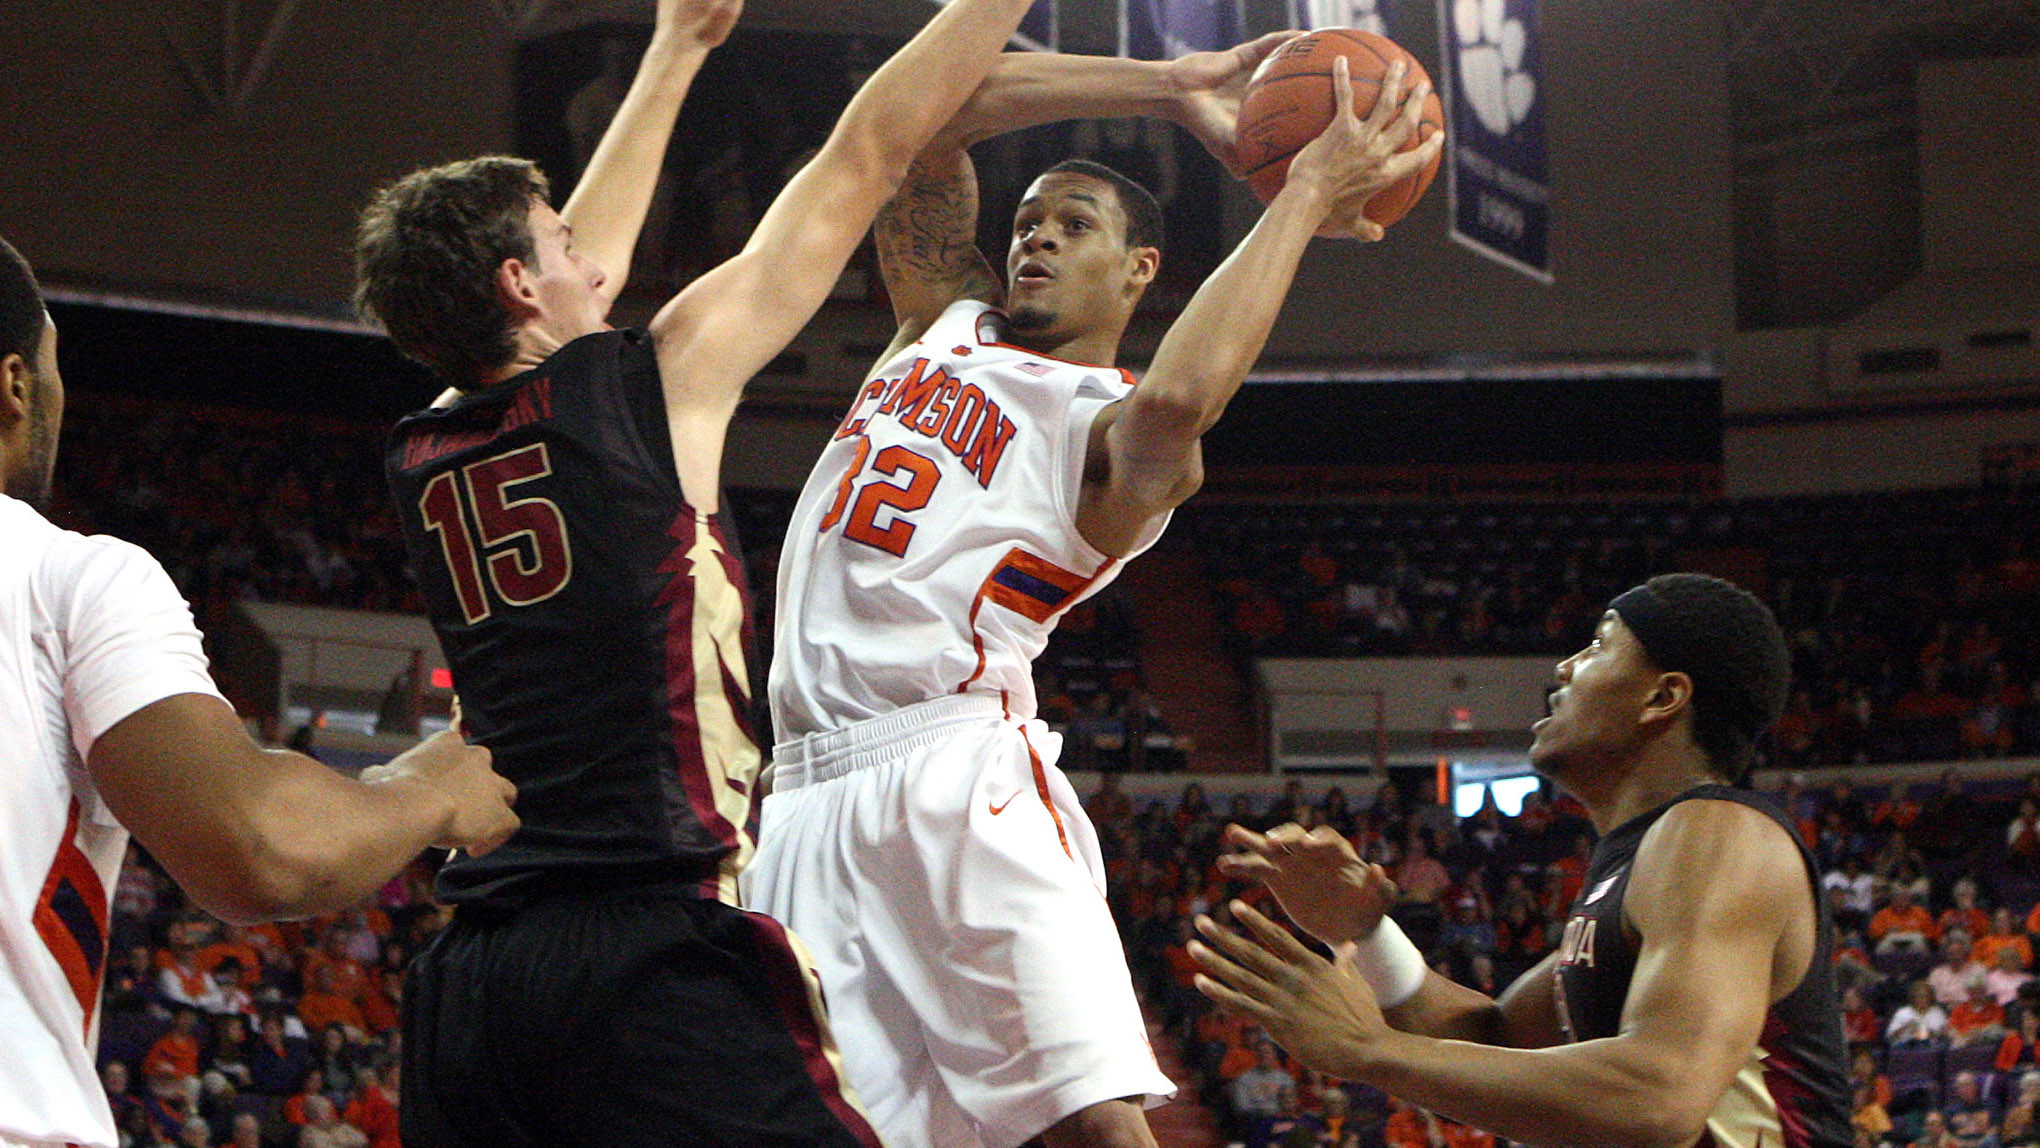 Clemson to Face #1 Duke in Durham Tuesday Night